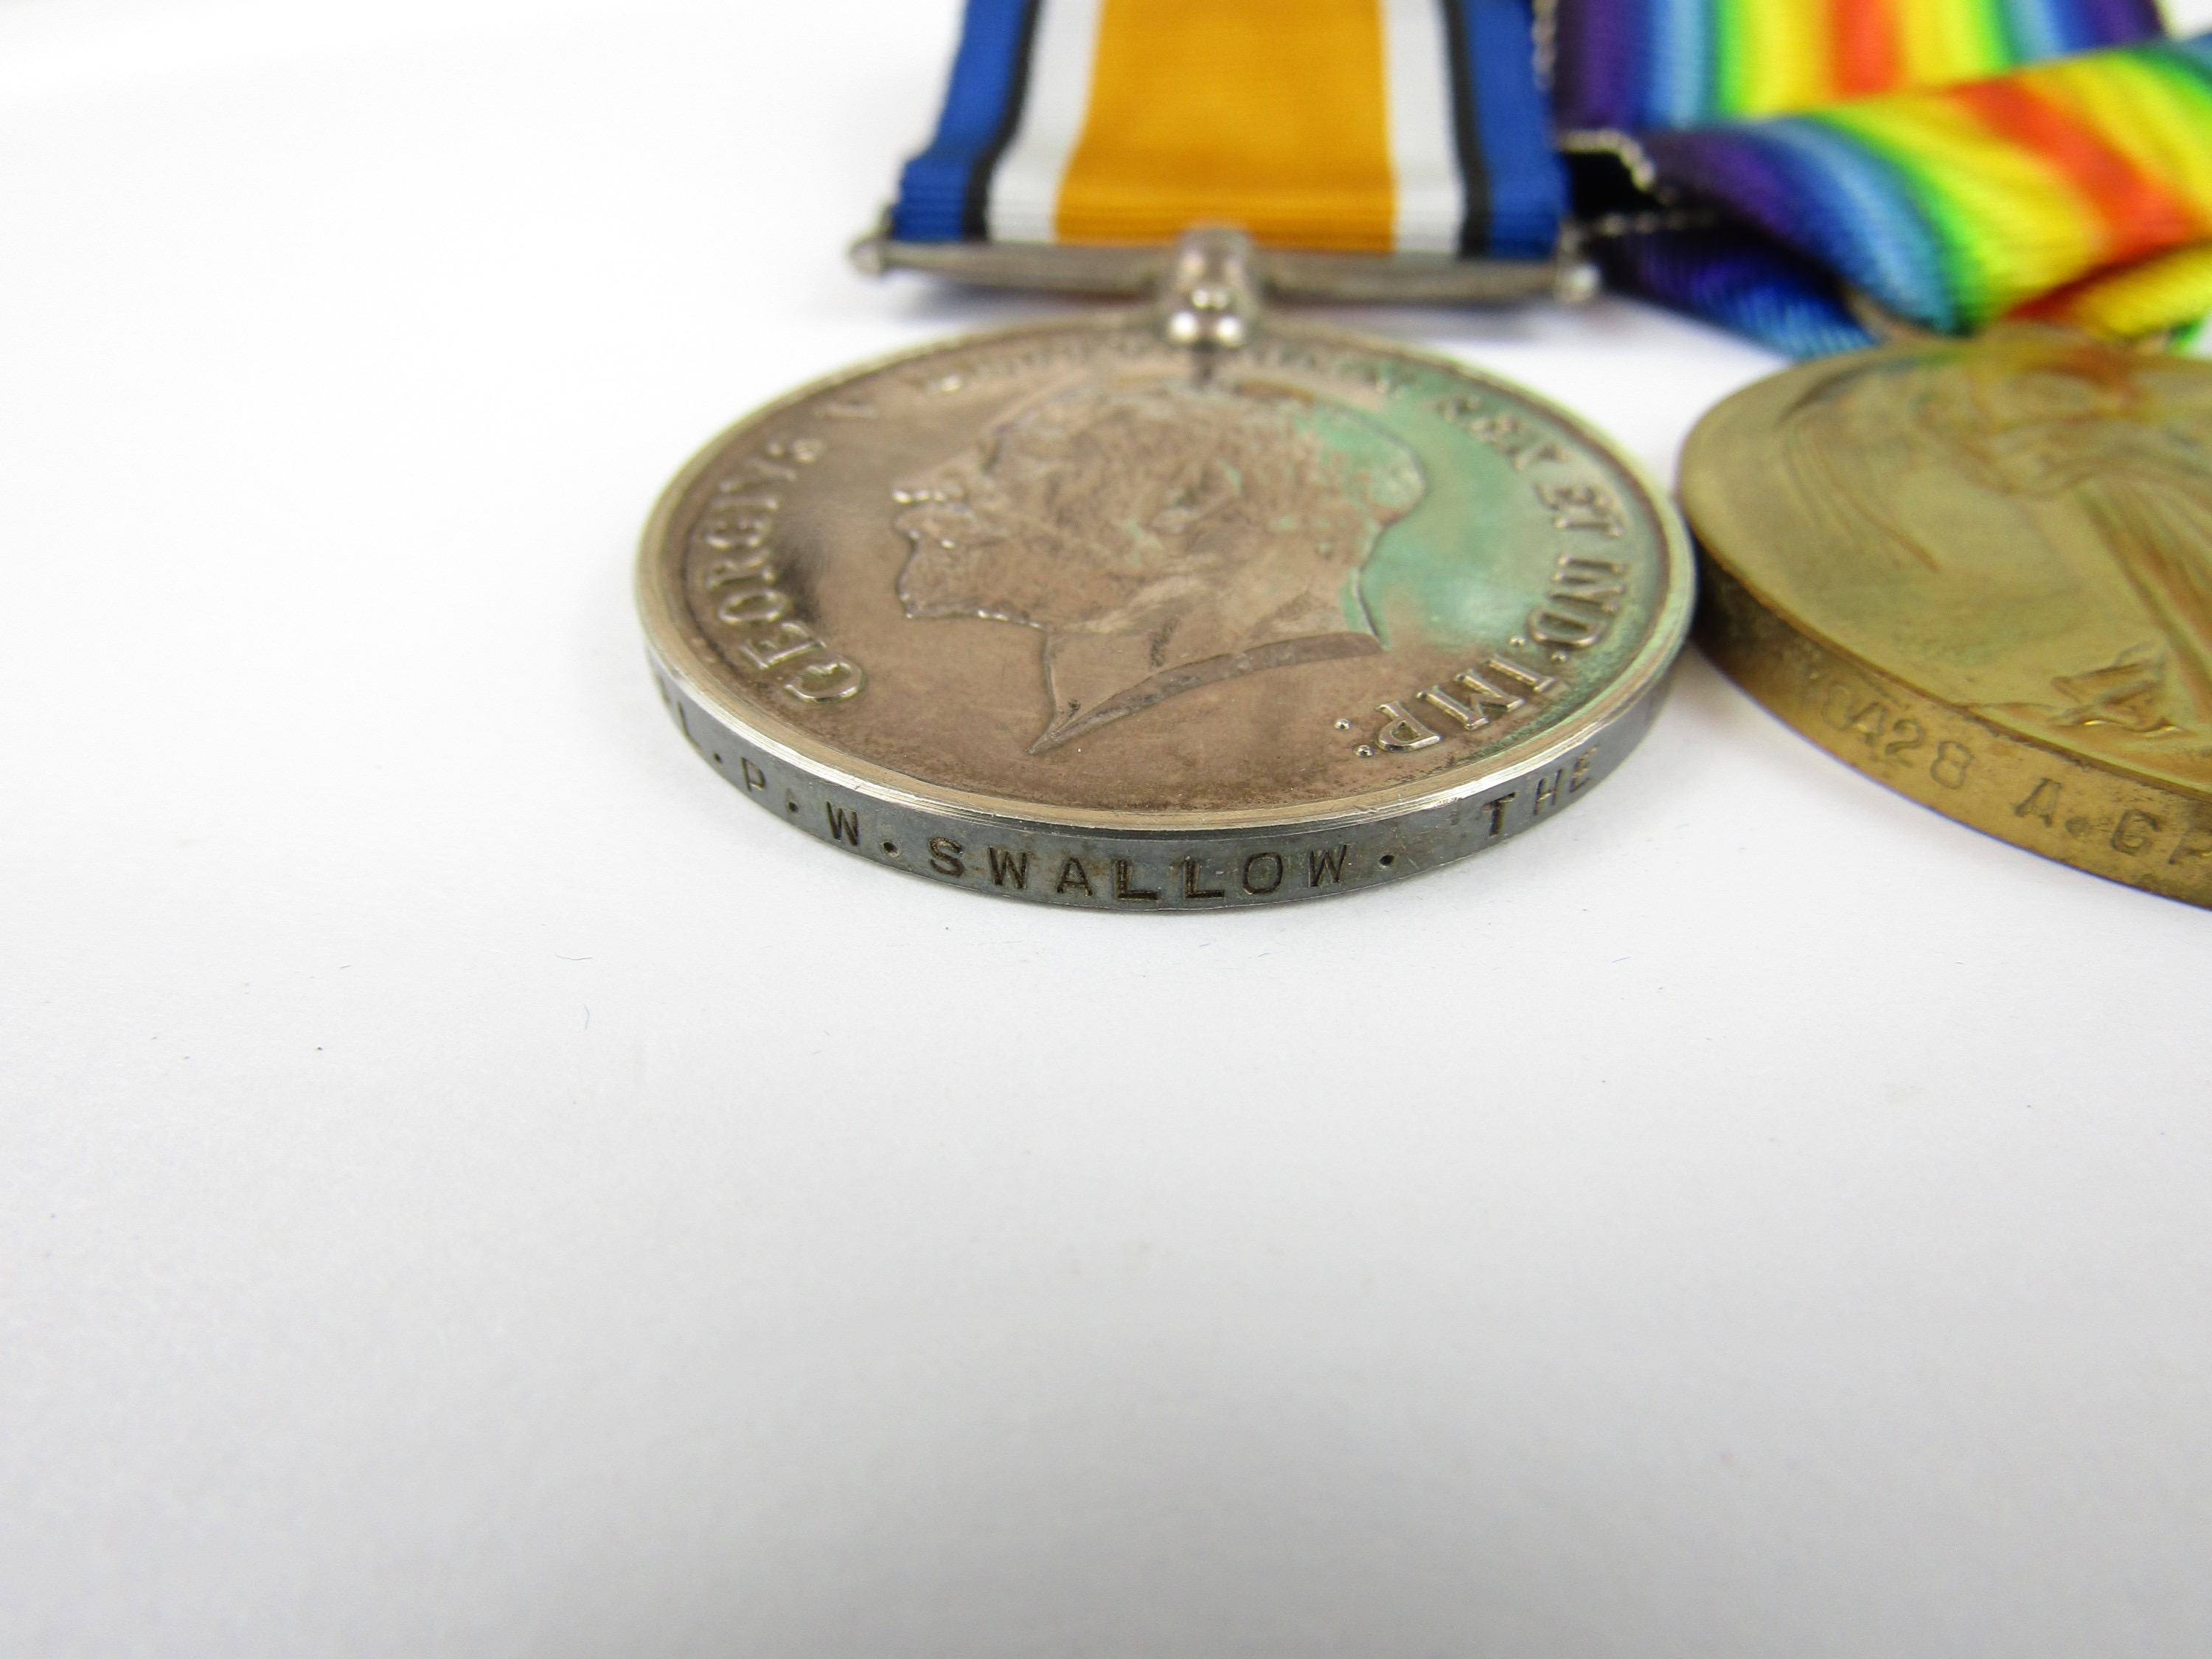 Lot 13 - A British War and Victory Medal pair to 18428 A Cpl P W Swallow, The Queen's Regiment